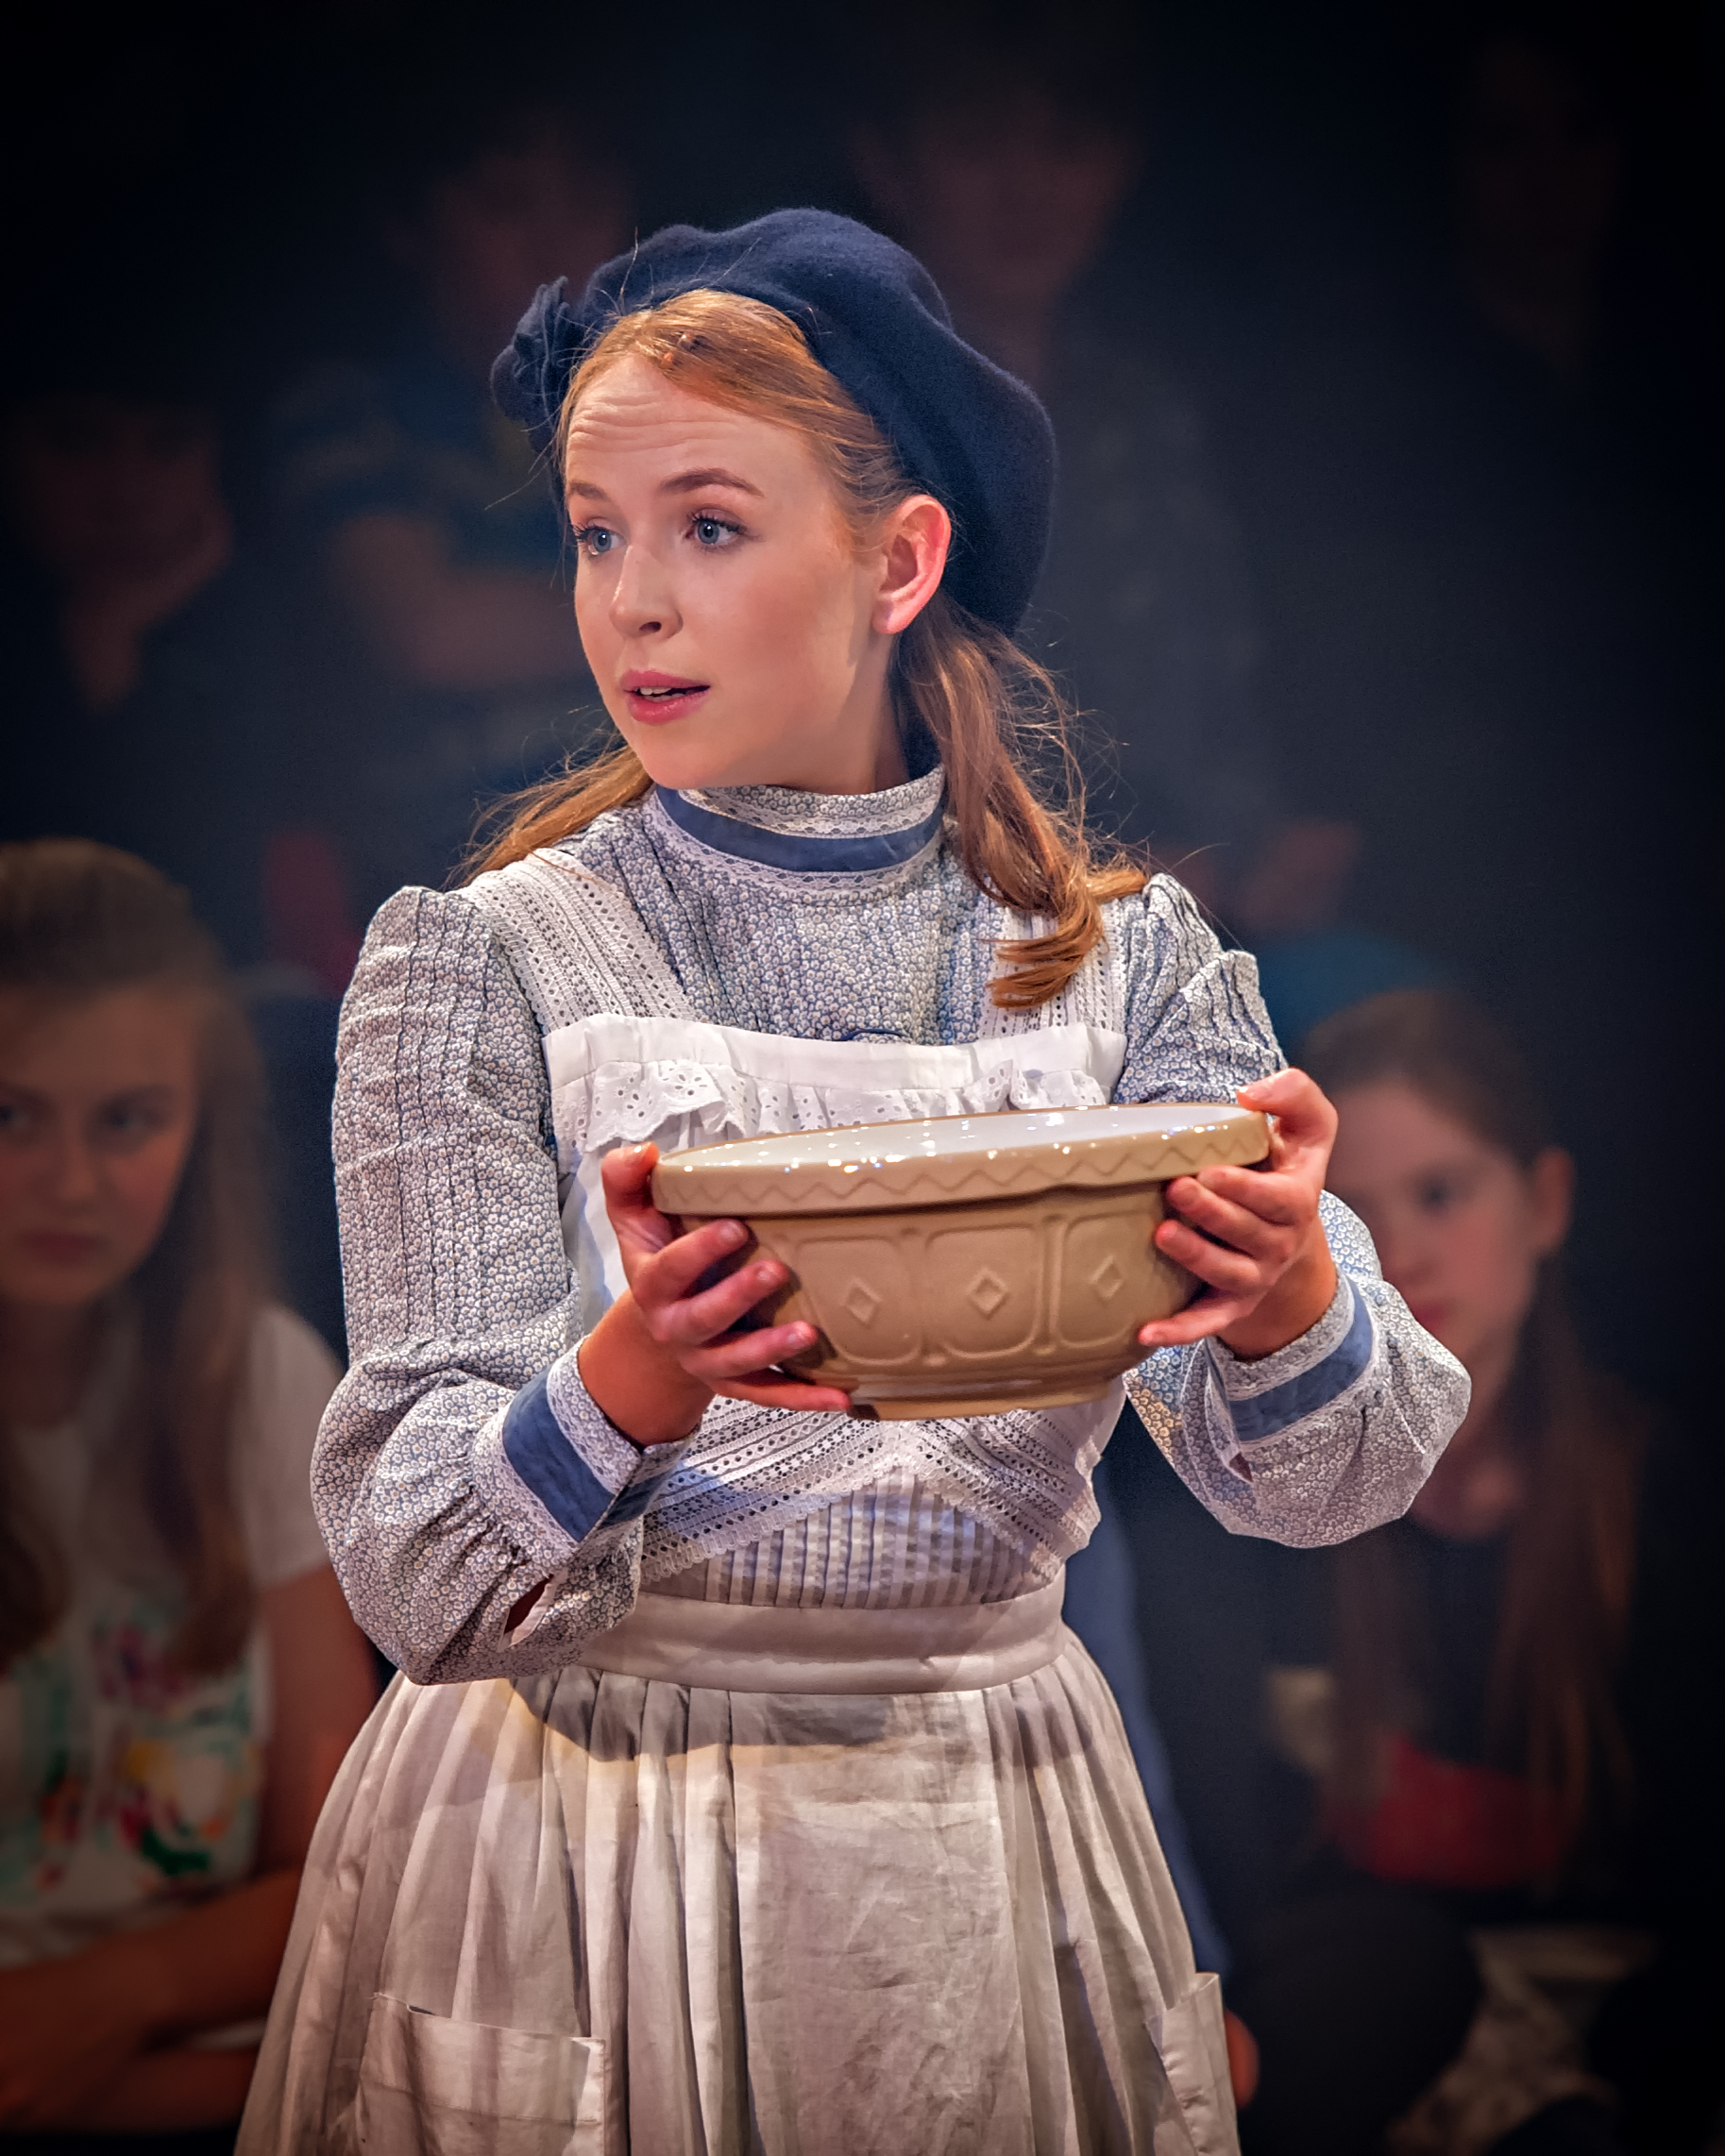 Rozzi Nicholson-Lailey as Roberta credit Anthony Robling